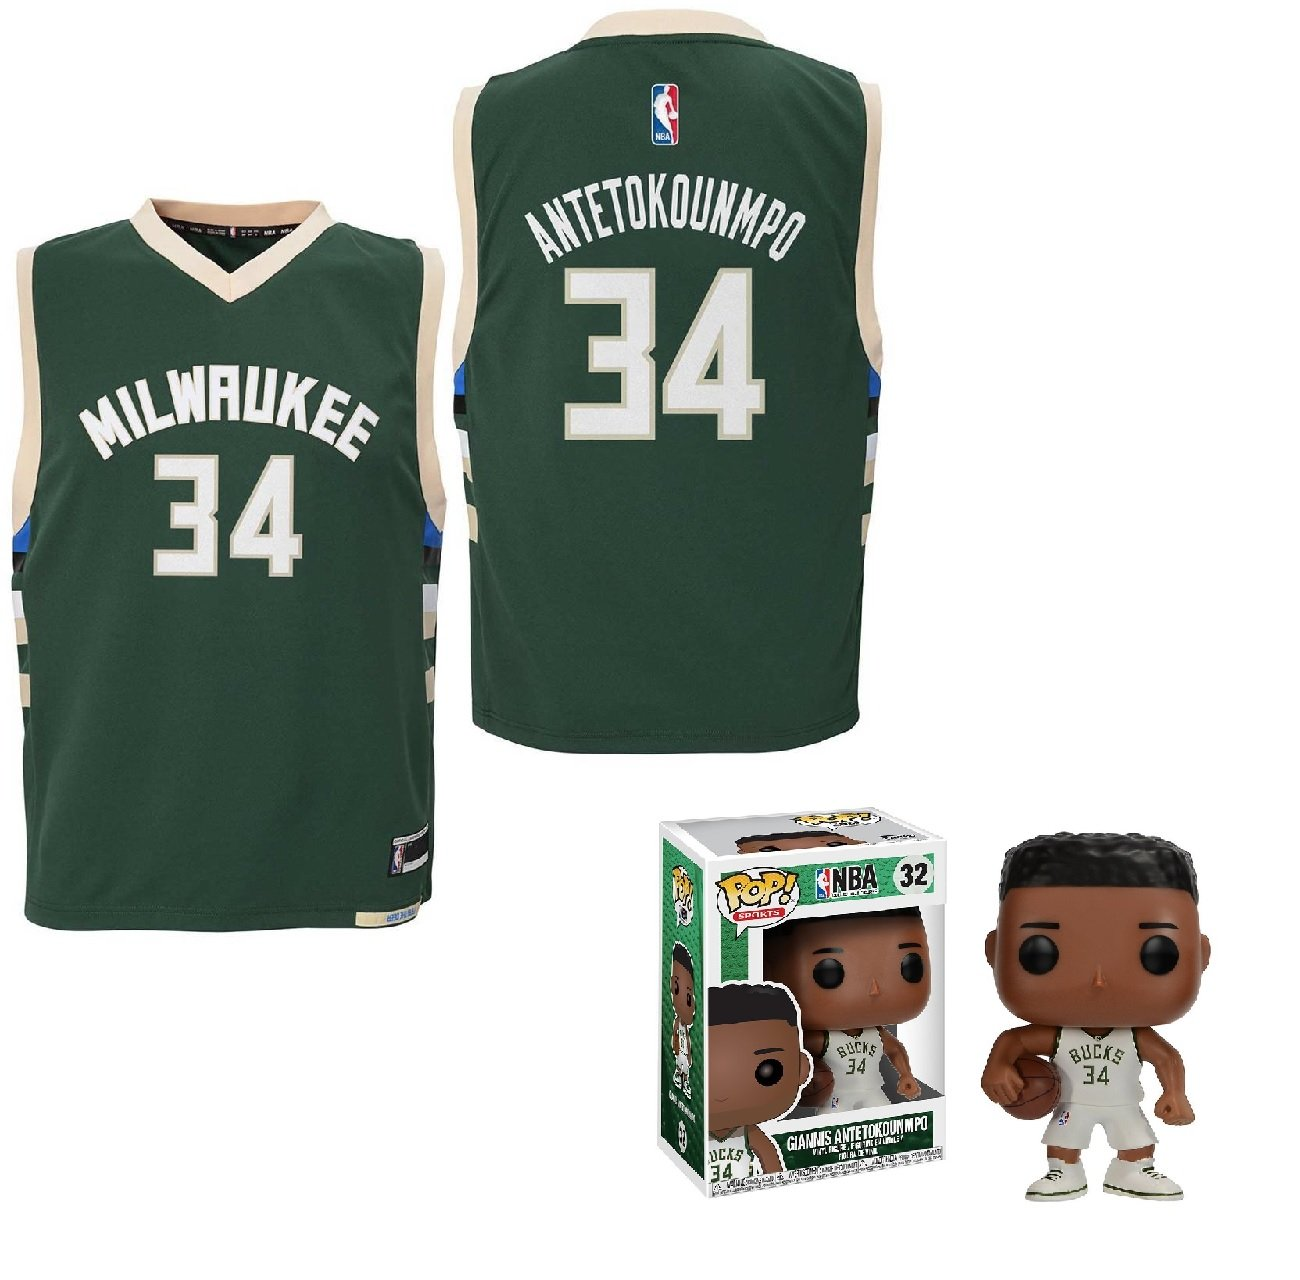 buy popular 9d55b 256b2 Amazon.com : NBA by Outerstuff Giannis Antetokounmpo ...